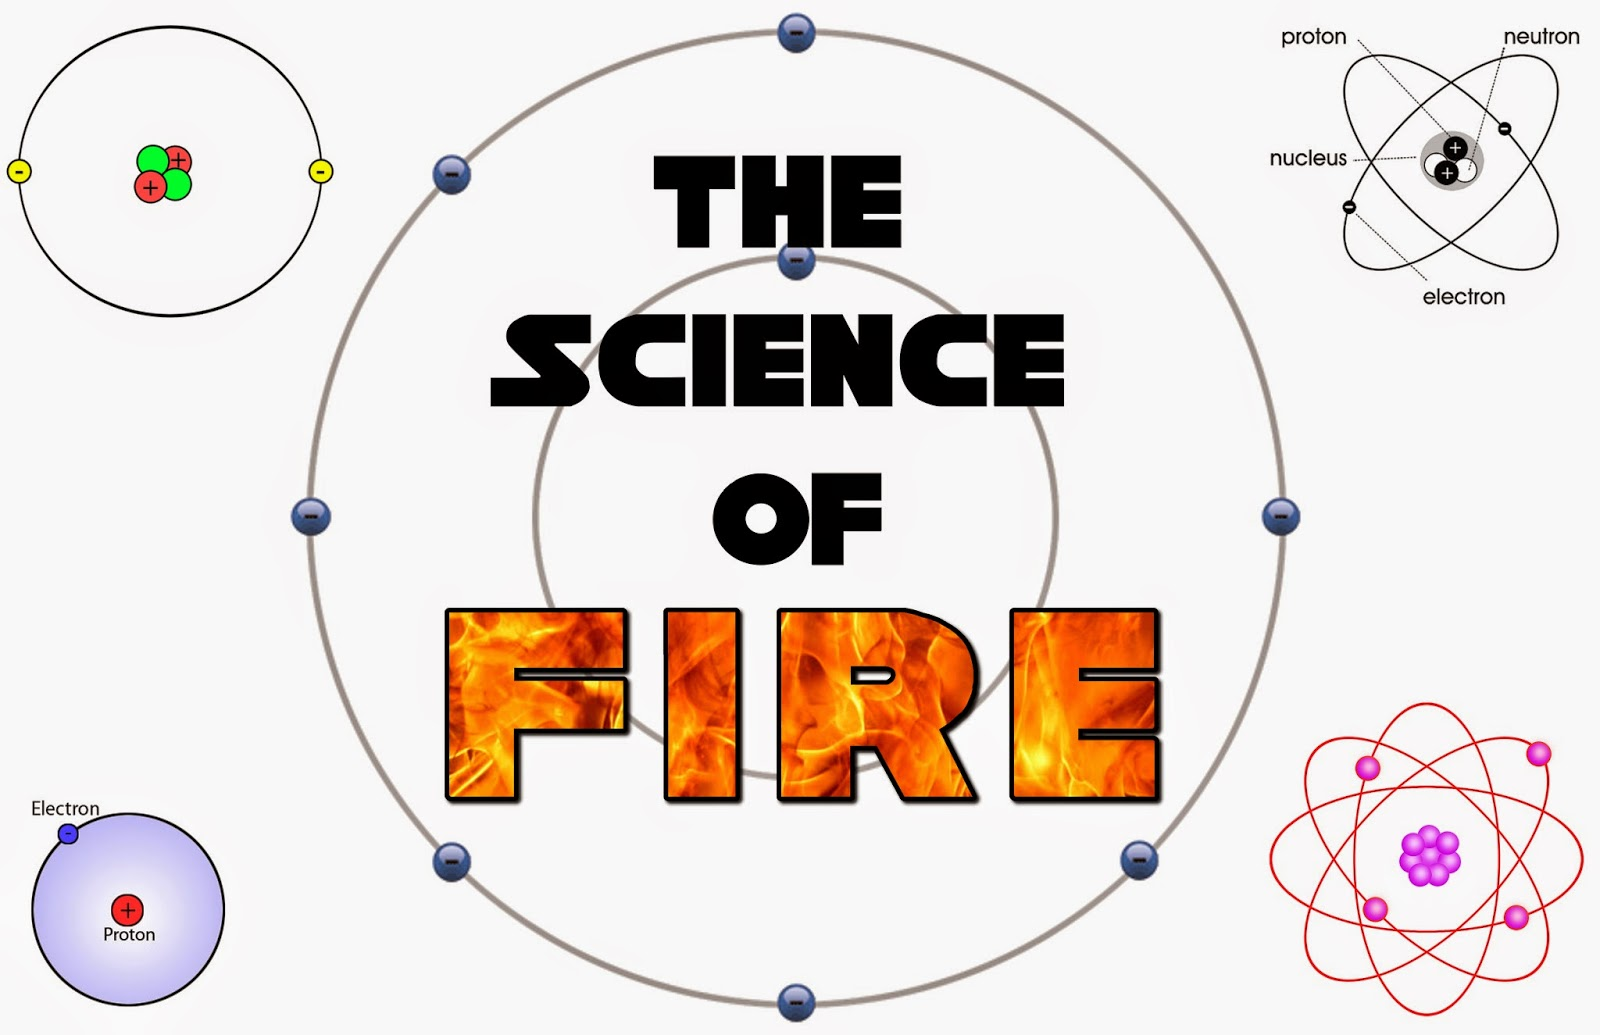 science combustion Are you looking for a science fair project that involves fire or combustion here are some ideas for fire projects to get you brainstorming.